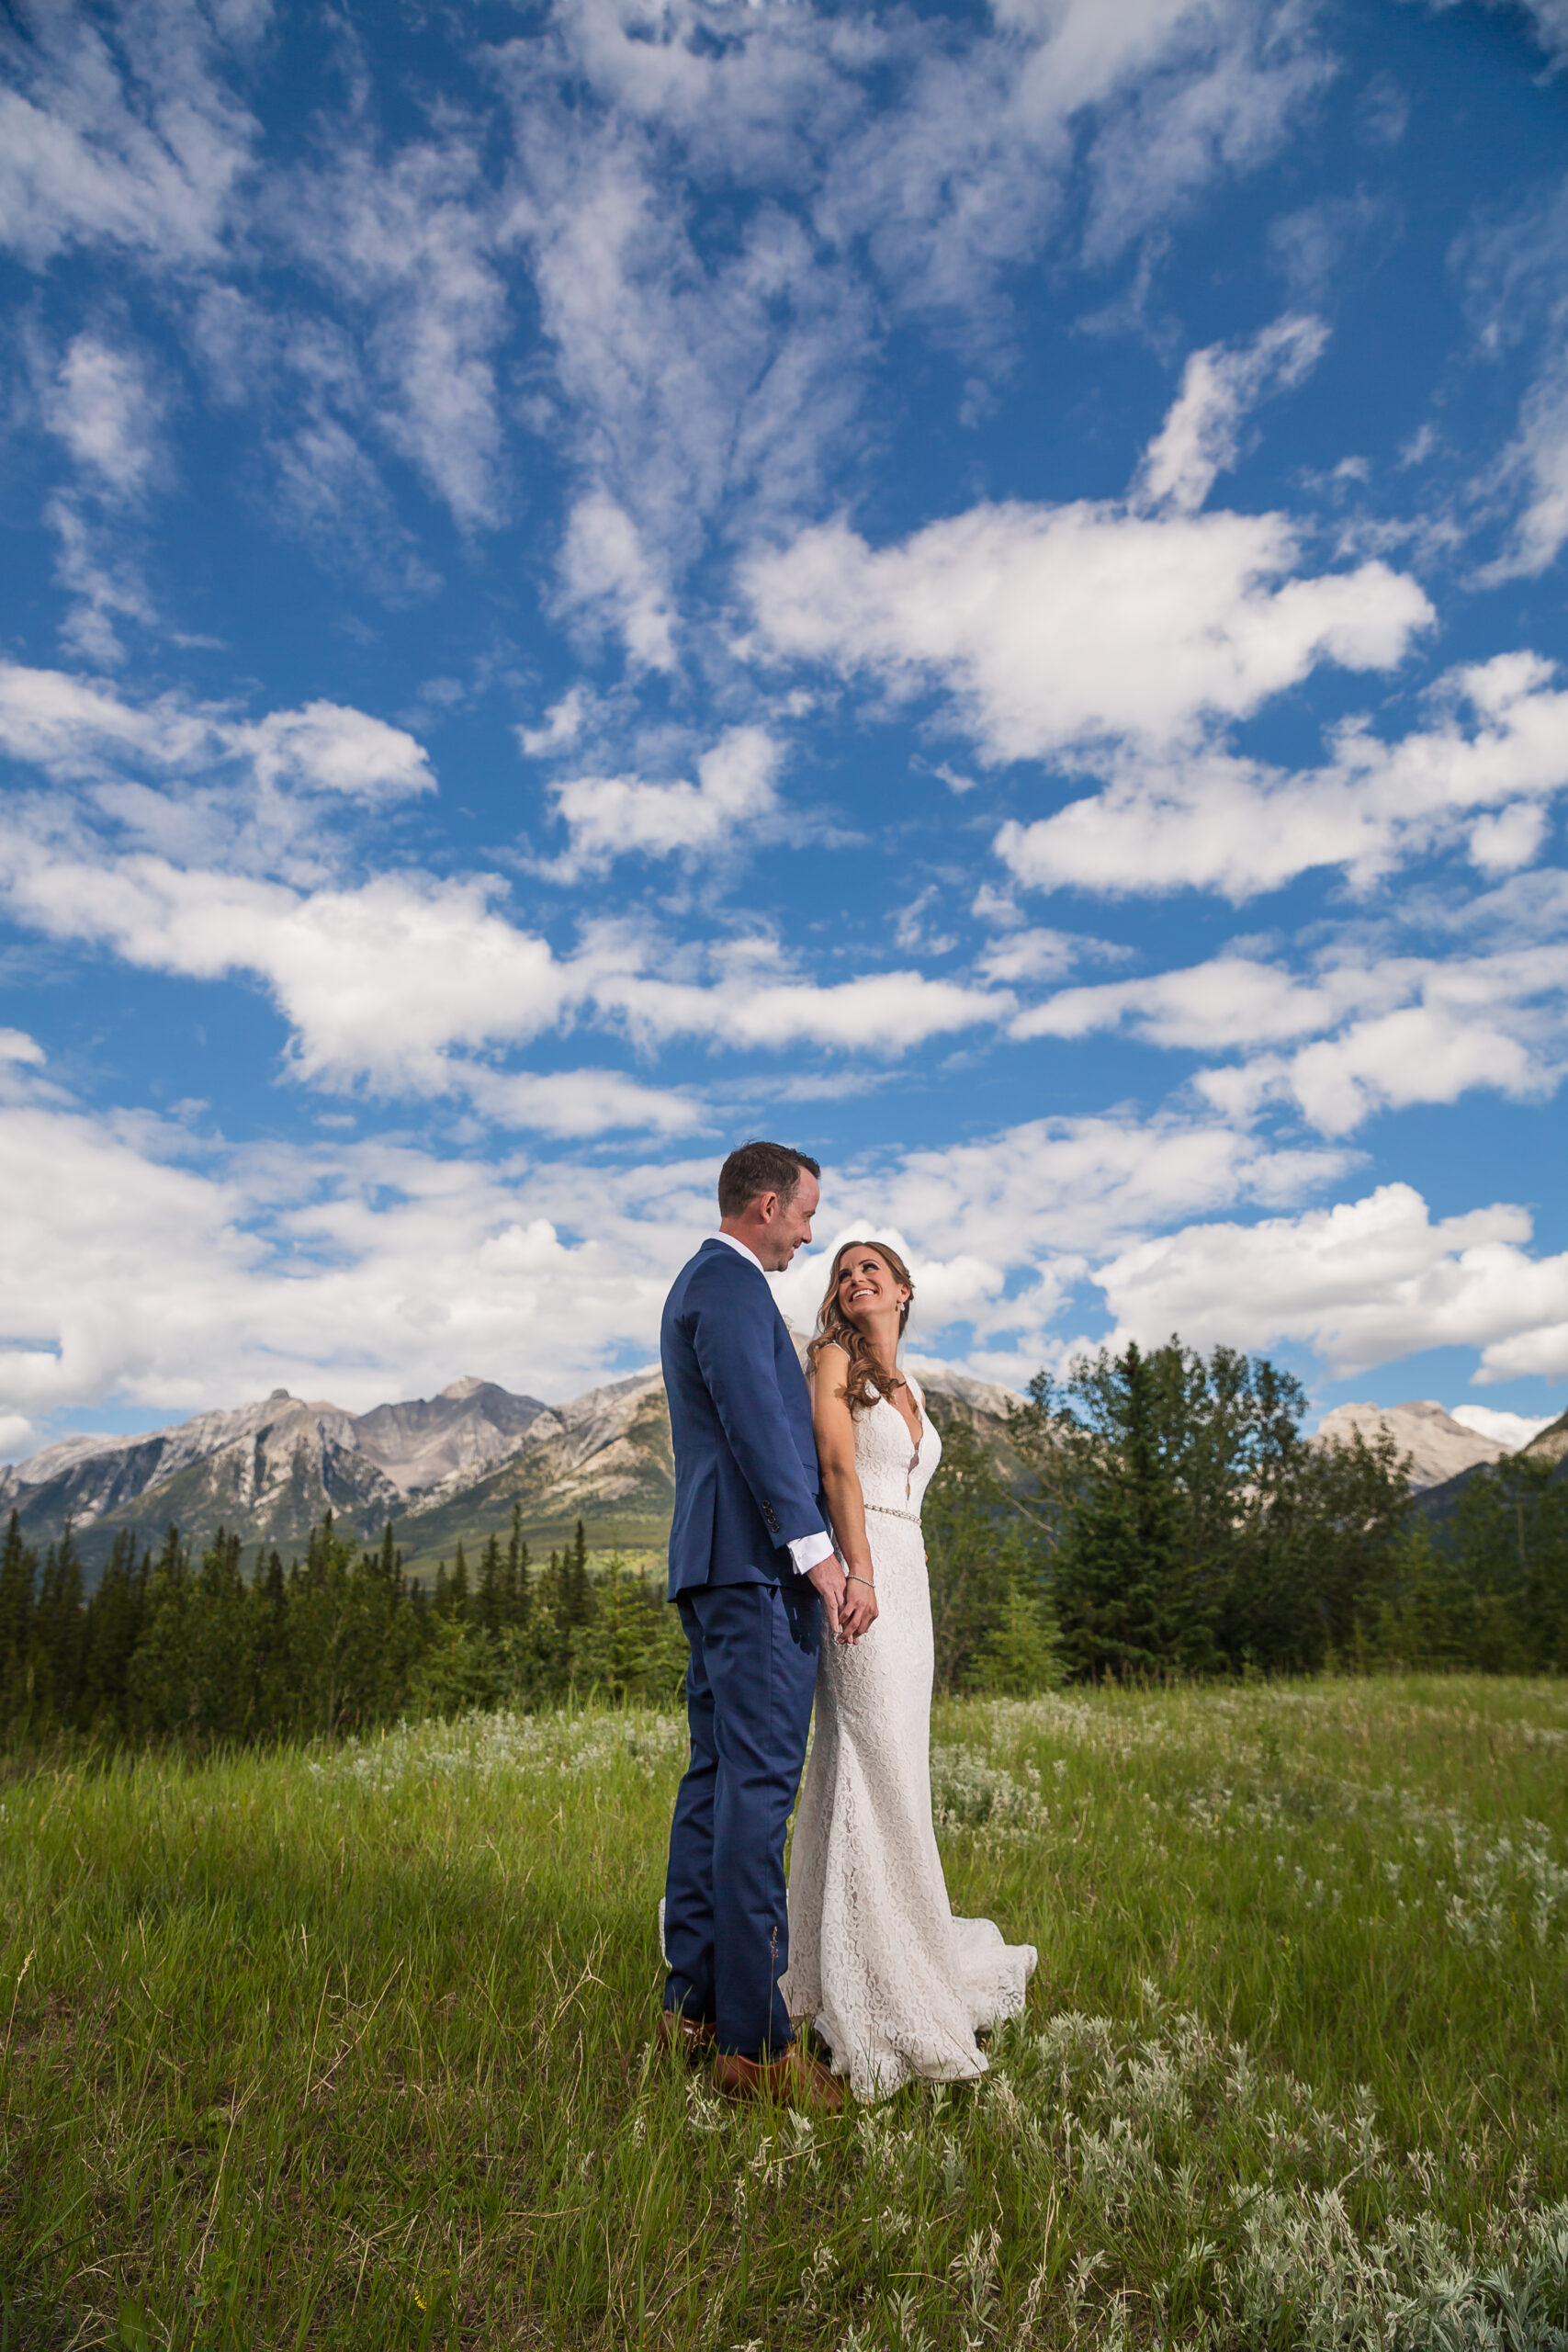 Bride and groom under a blue sky